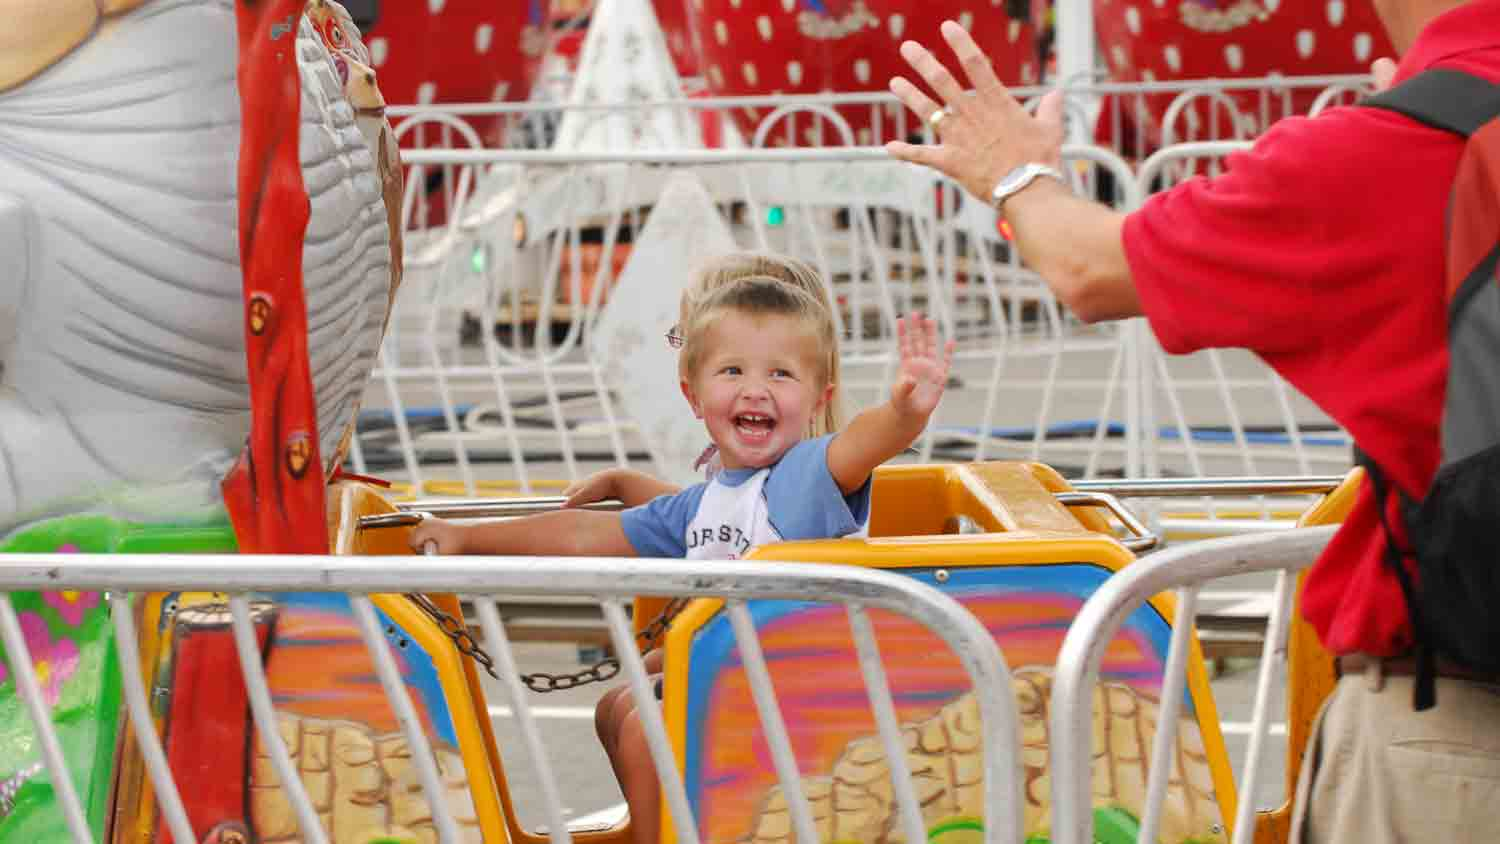 Indiana State Fair 2014 - A Time to Celebrate 11